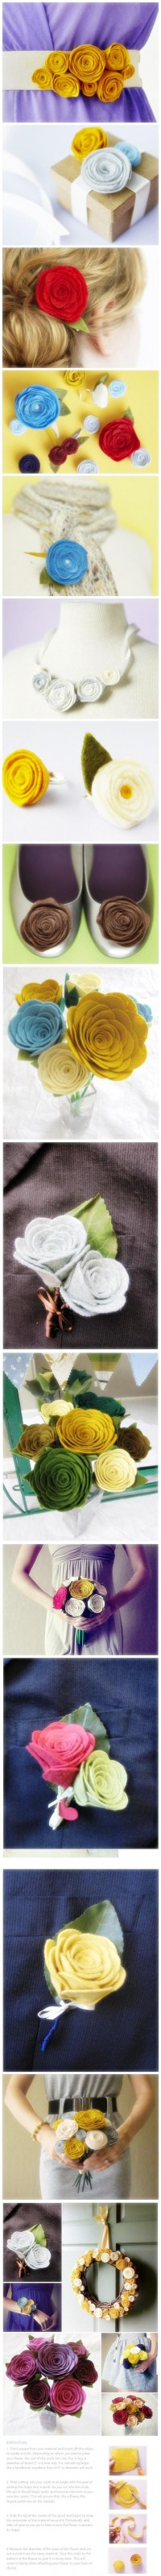 Hand Made Felt Wedding Decoration